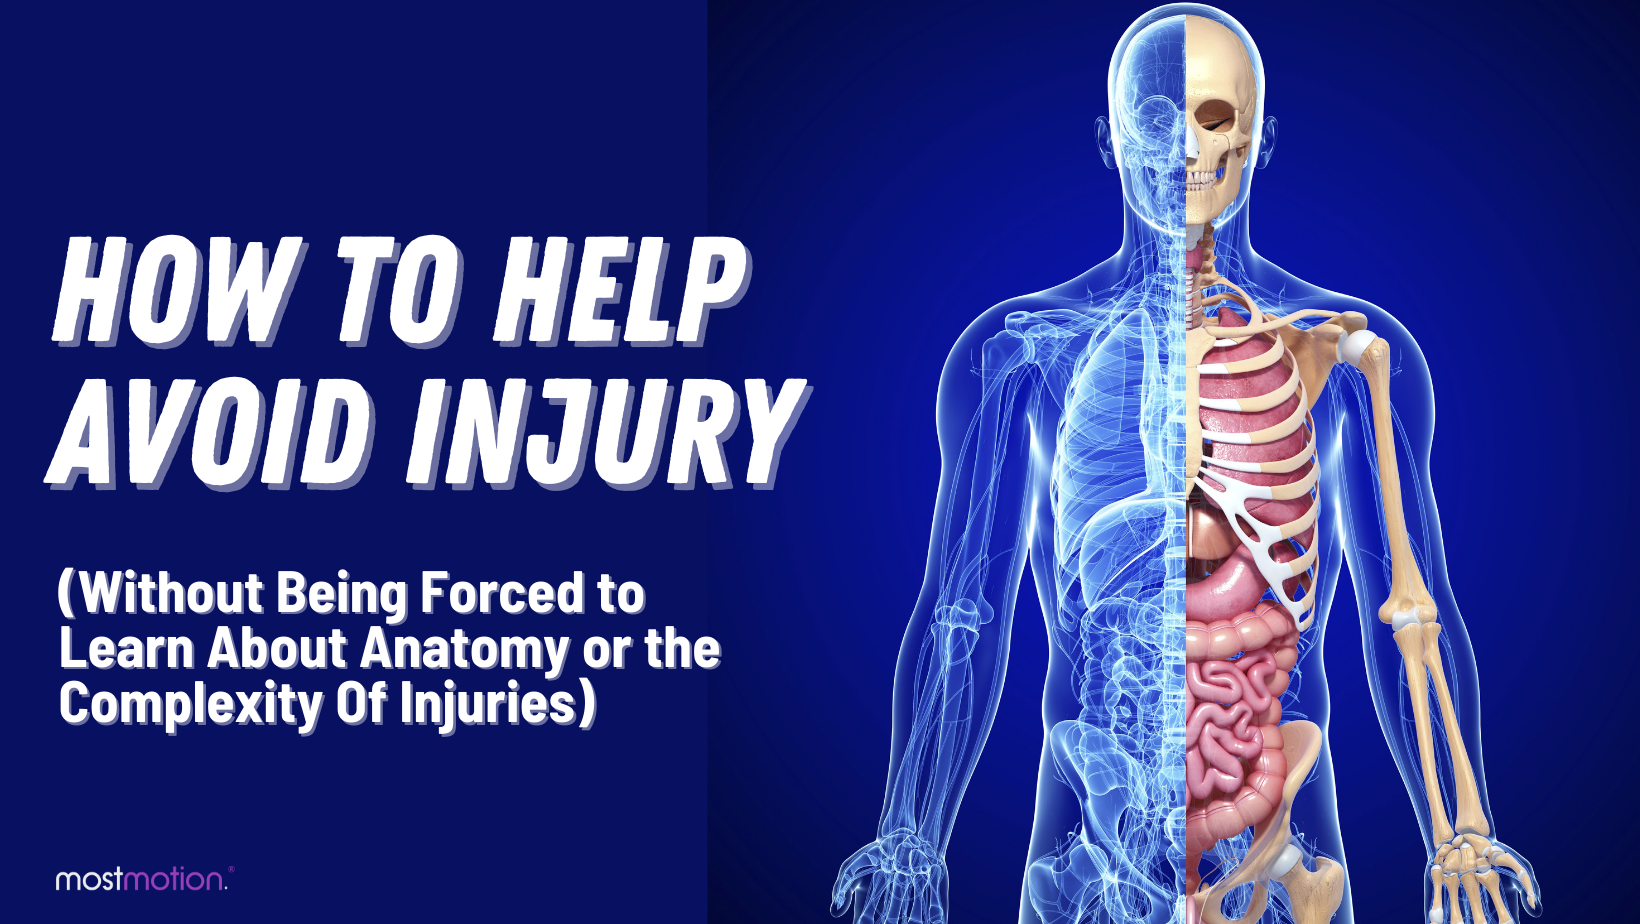 How to Help Avoid Injury (Without Being Forced to Learn About Anatomy or the Complexities of Injuries)